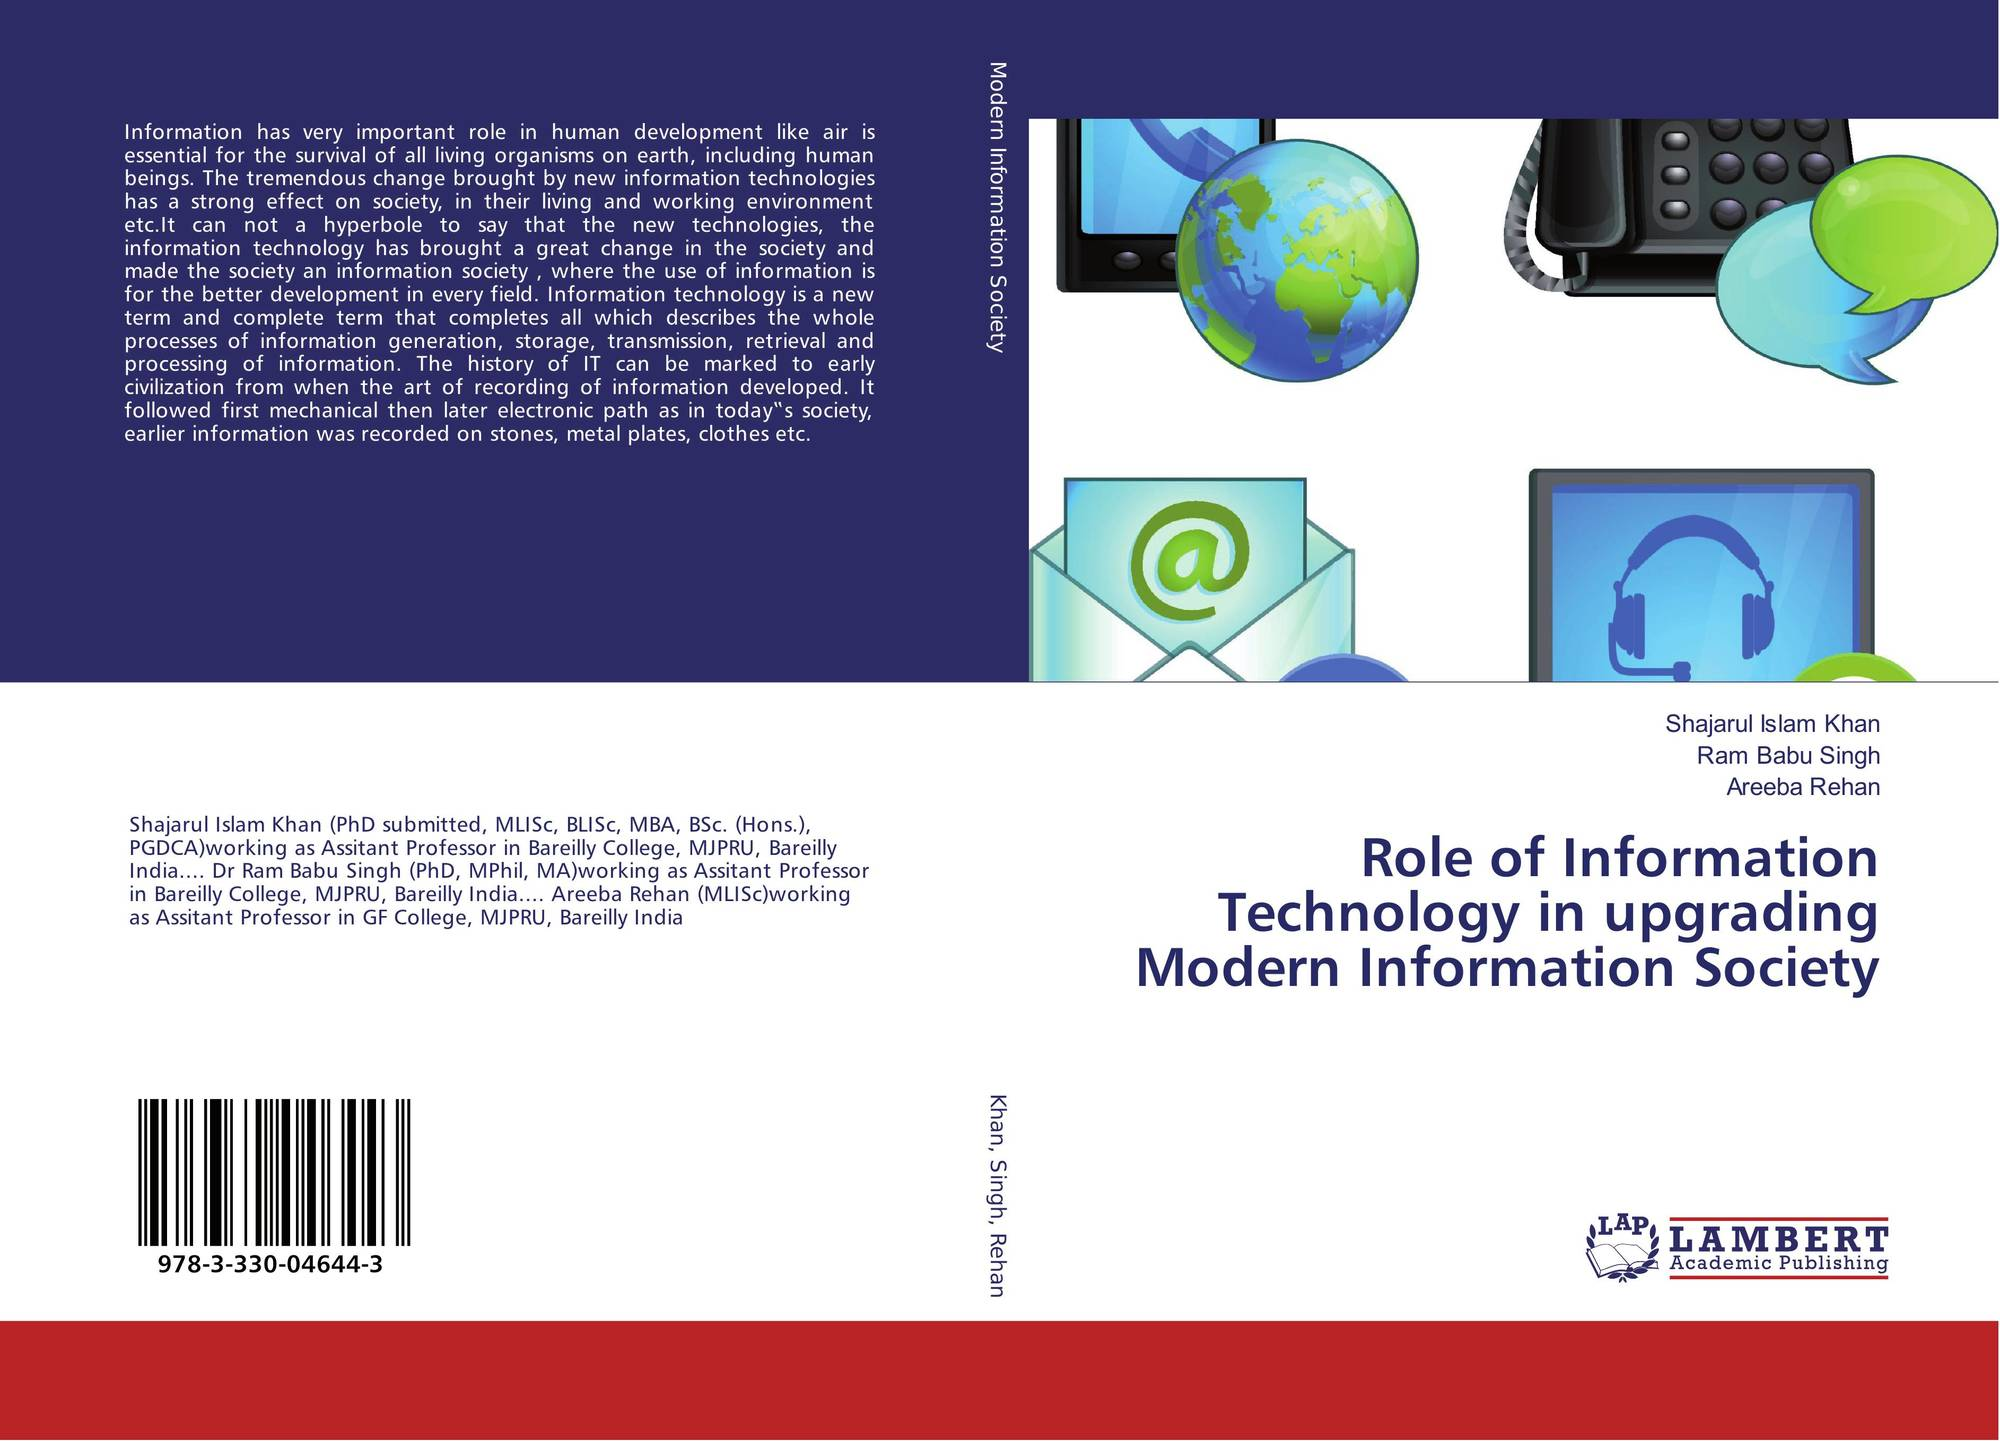 an introduction to the history and the importance of information technology it in todays society Basing on the example above, technology by its self is not harmful to the society, but the way society uses technology to achieve specific goals is what results into negative impacts of technology on the society.